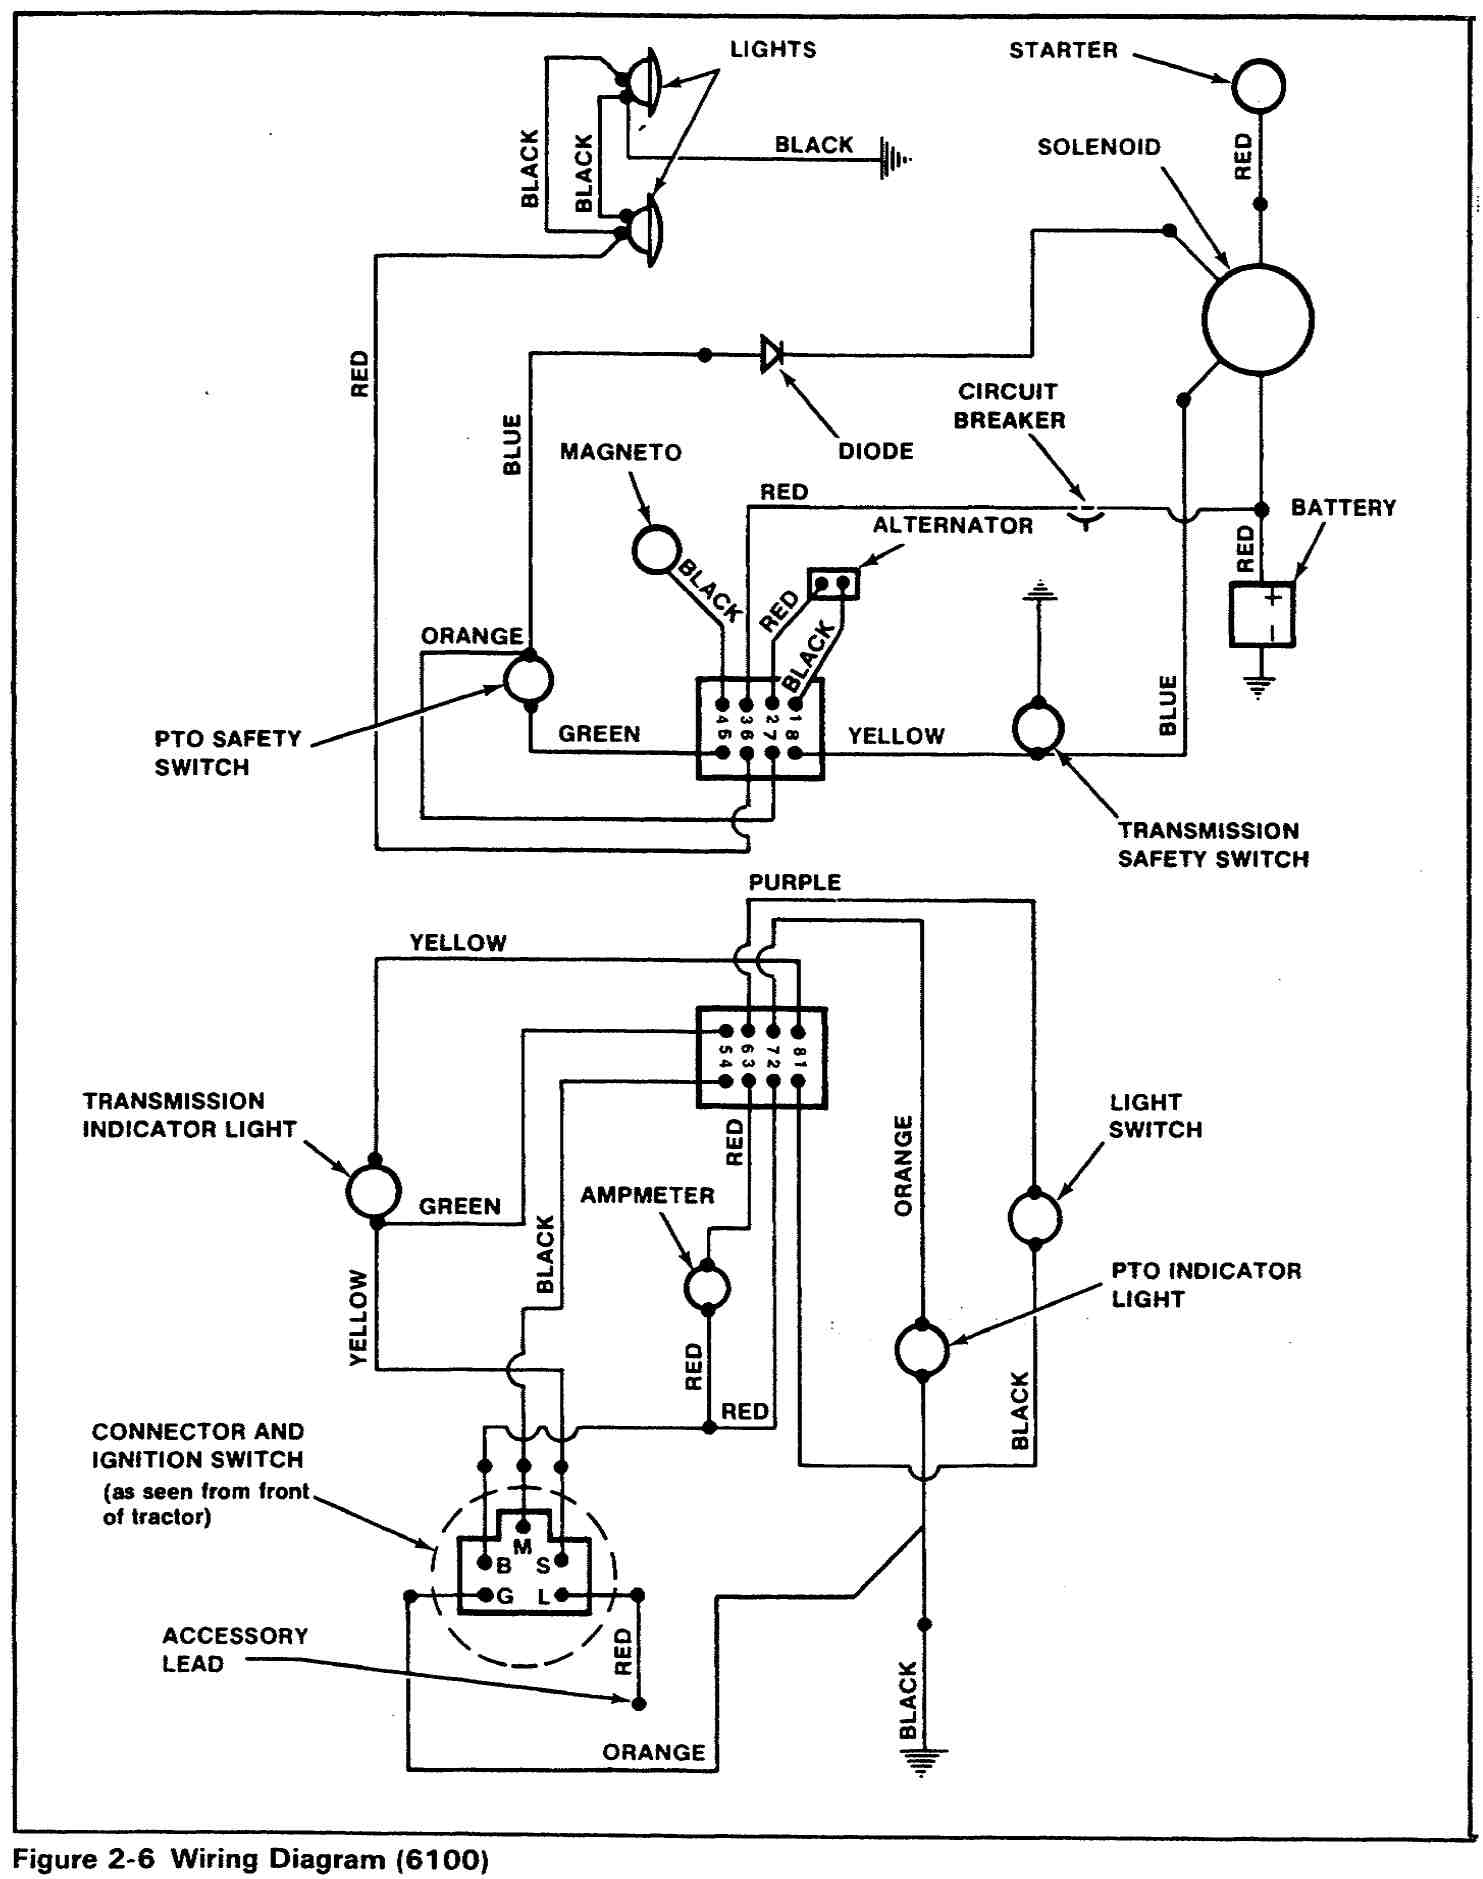 fiat spider ignition switch wiring diagram